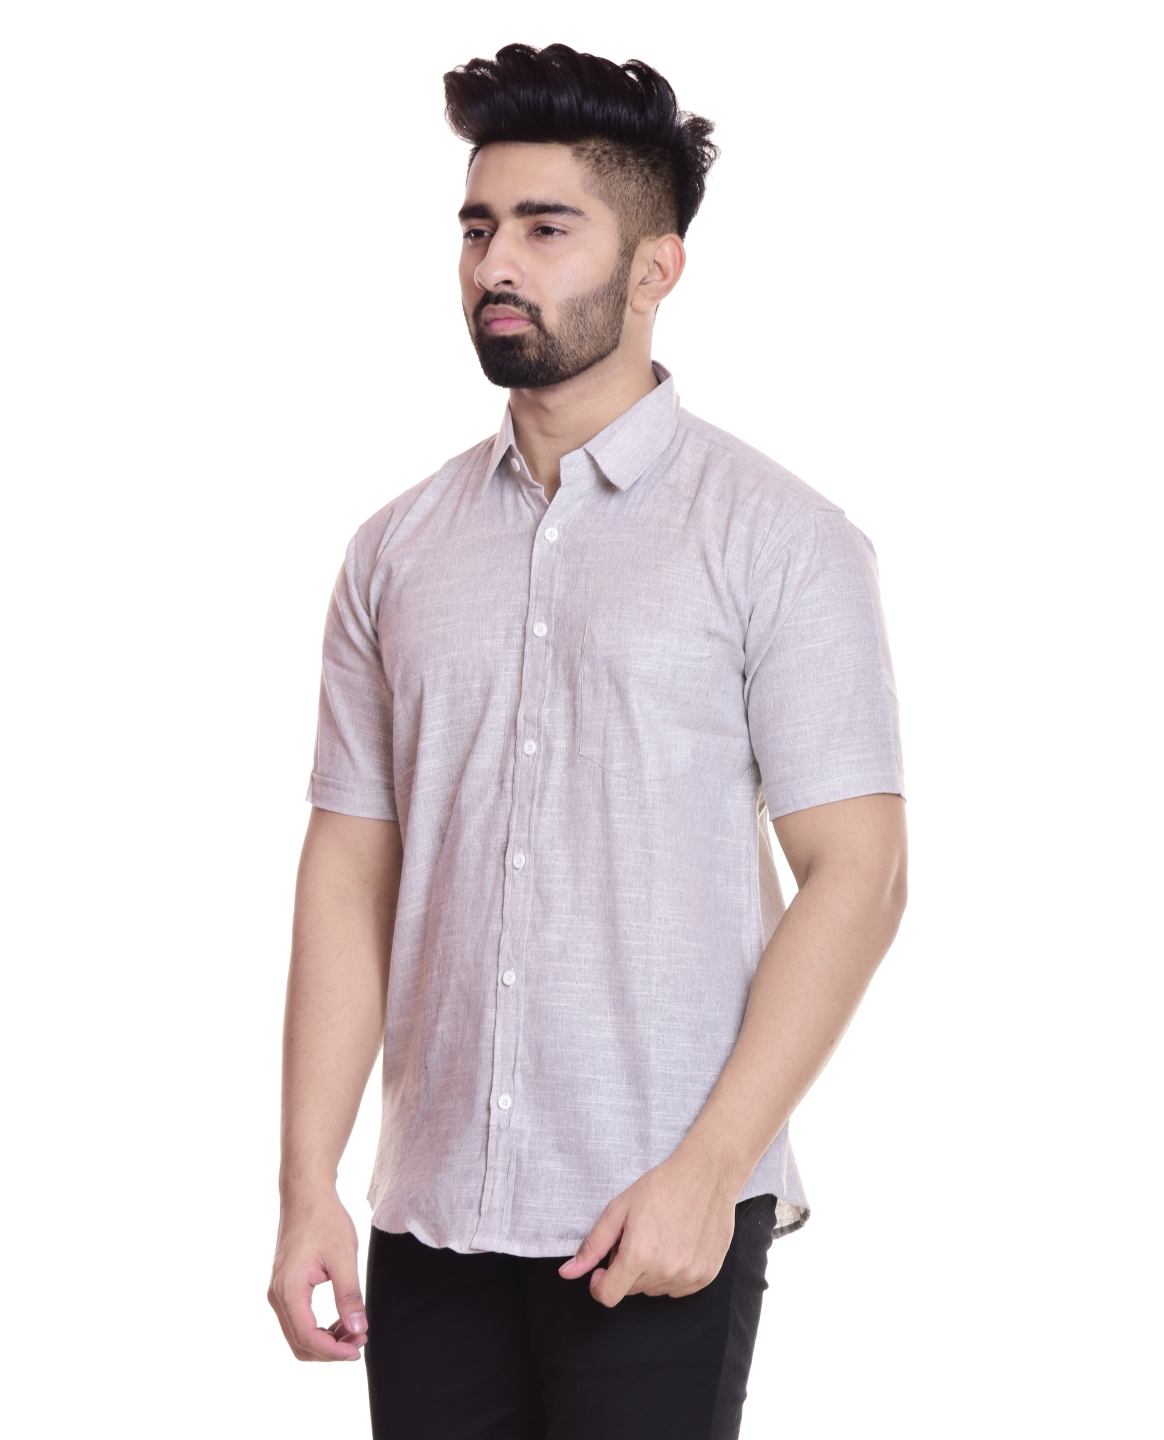 43225fe17 Mens Cotton Shirts From India - DREAMWORKS